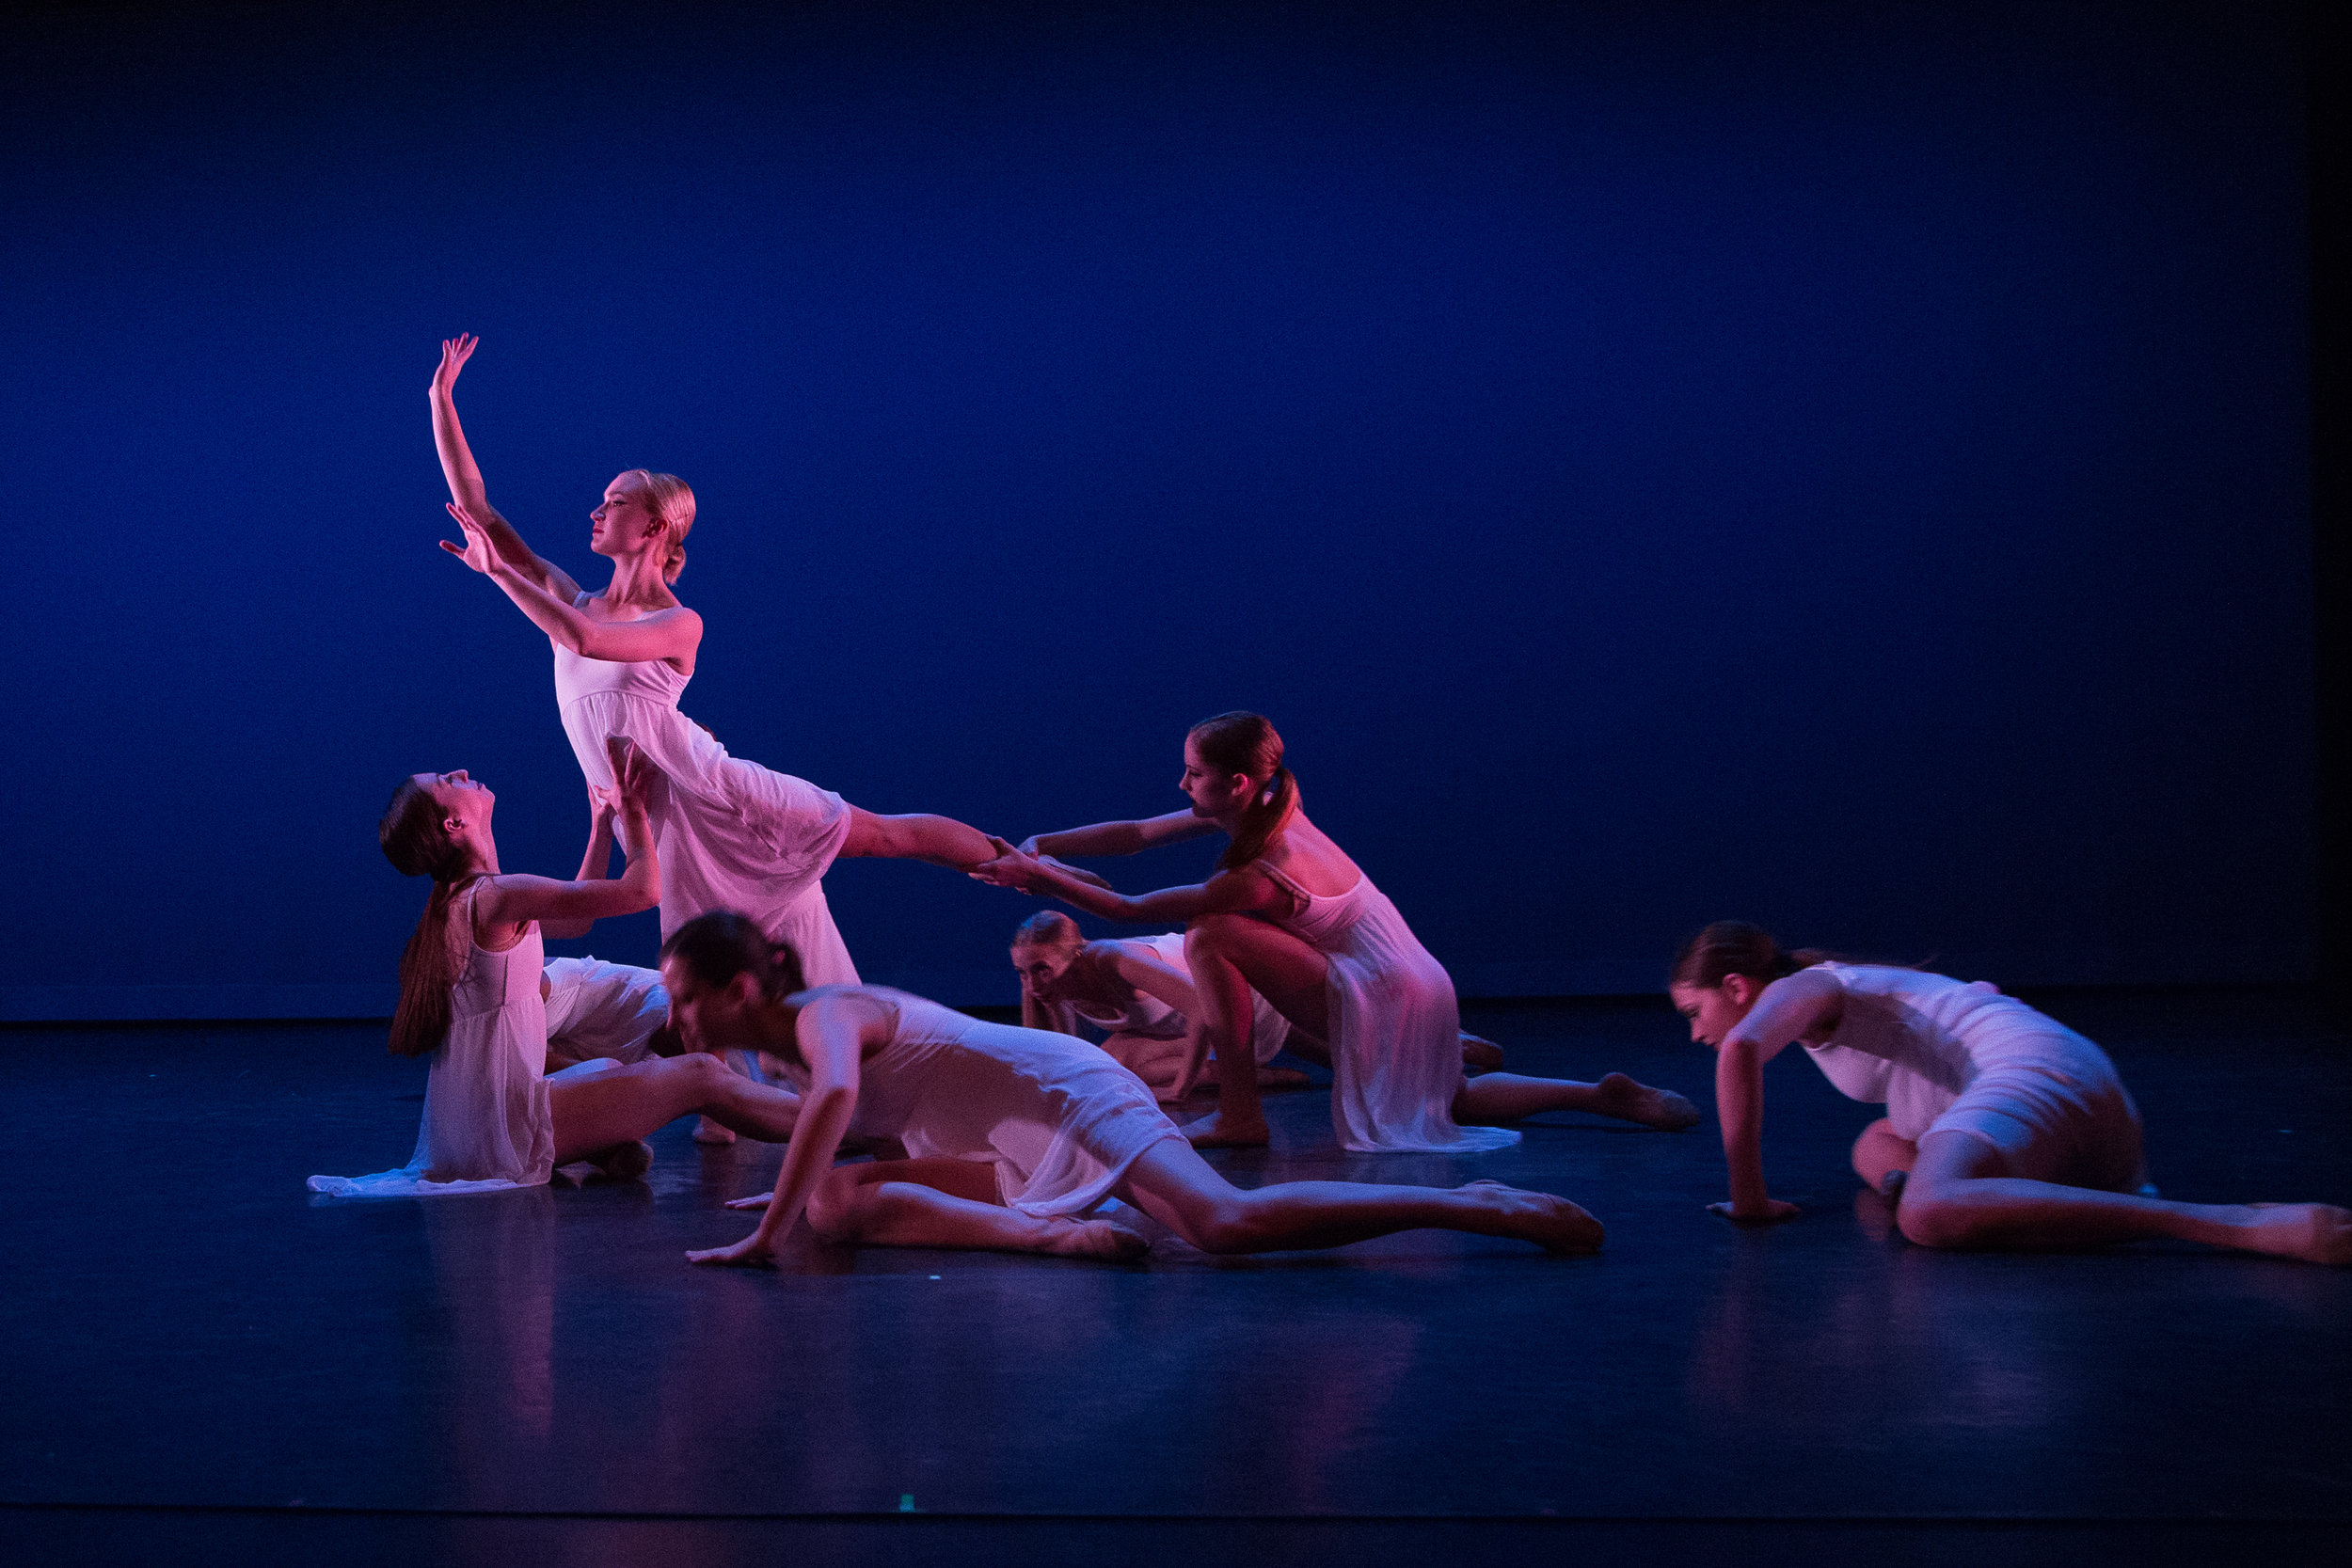 Configuration 2020 - March 7-8 & 13-14, 2020@Center Stage TheaterSee our Student Dance Companies perform.